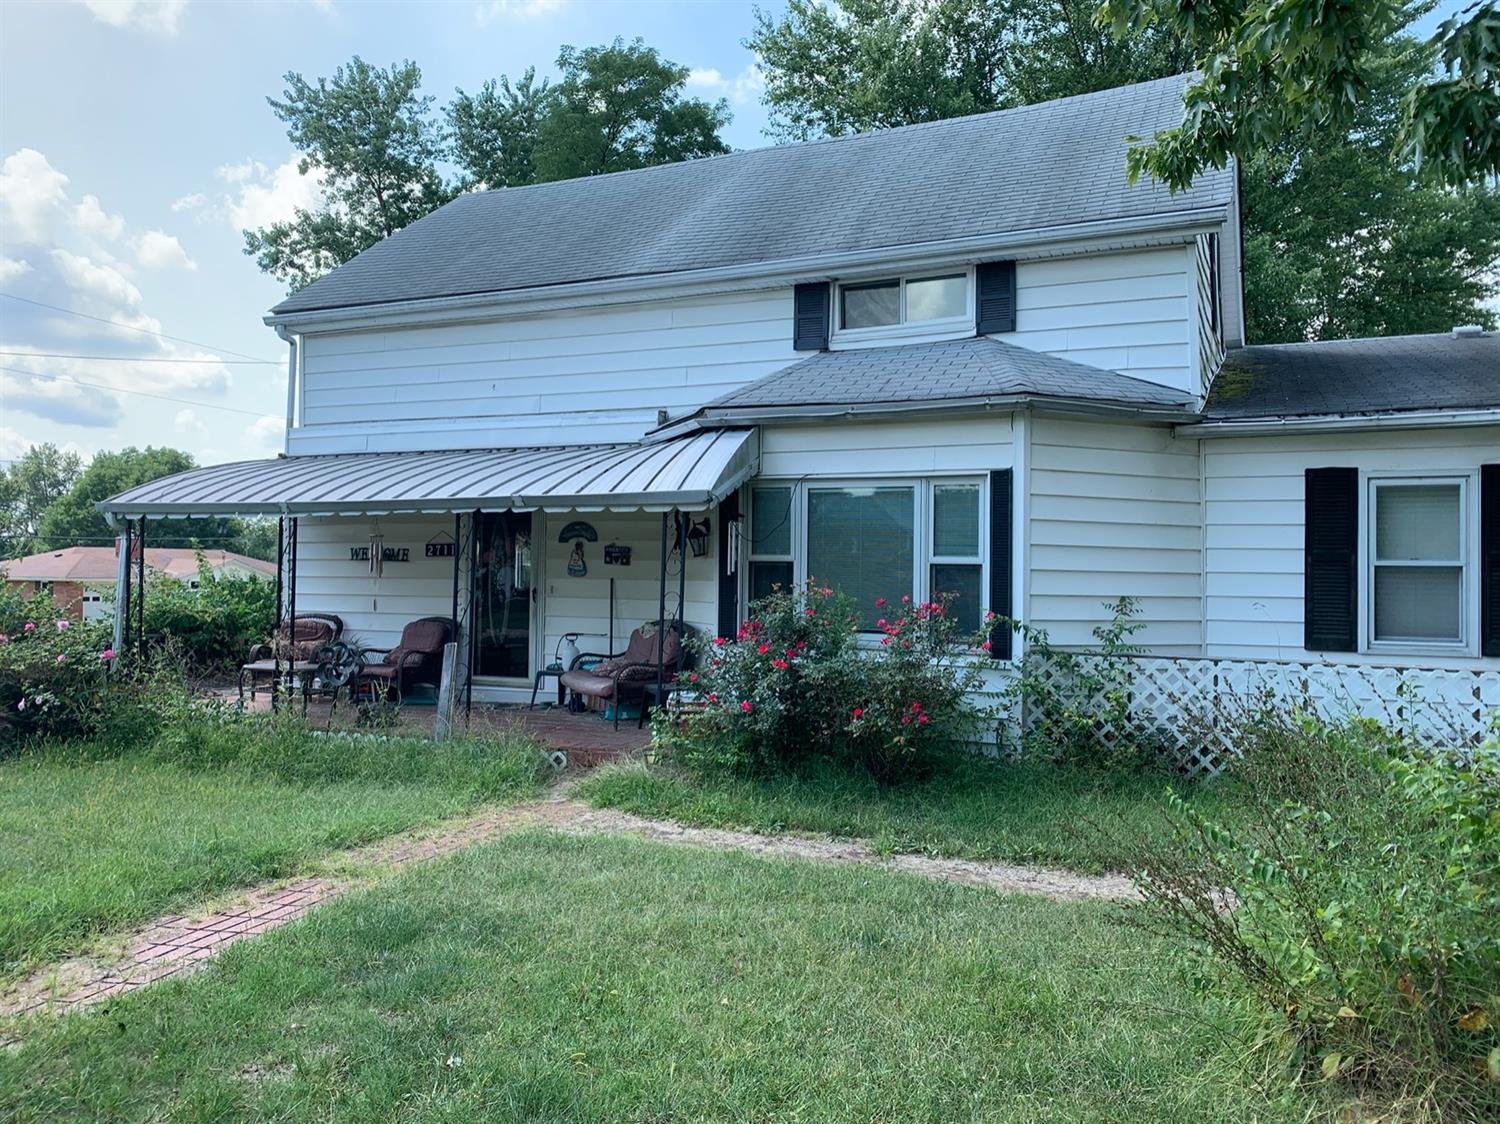 Photo 2 for 2711 S Law Rd Reily Twp., OH 45056